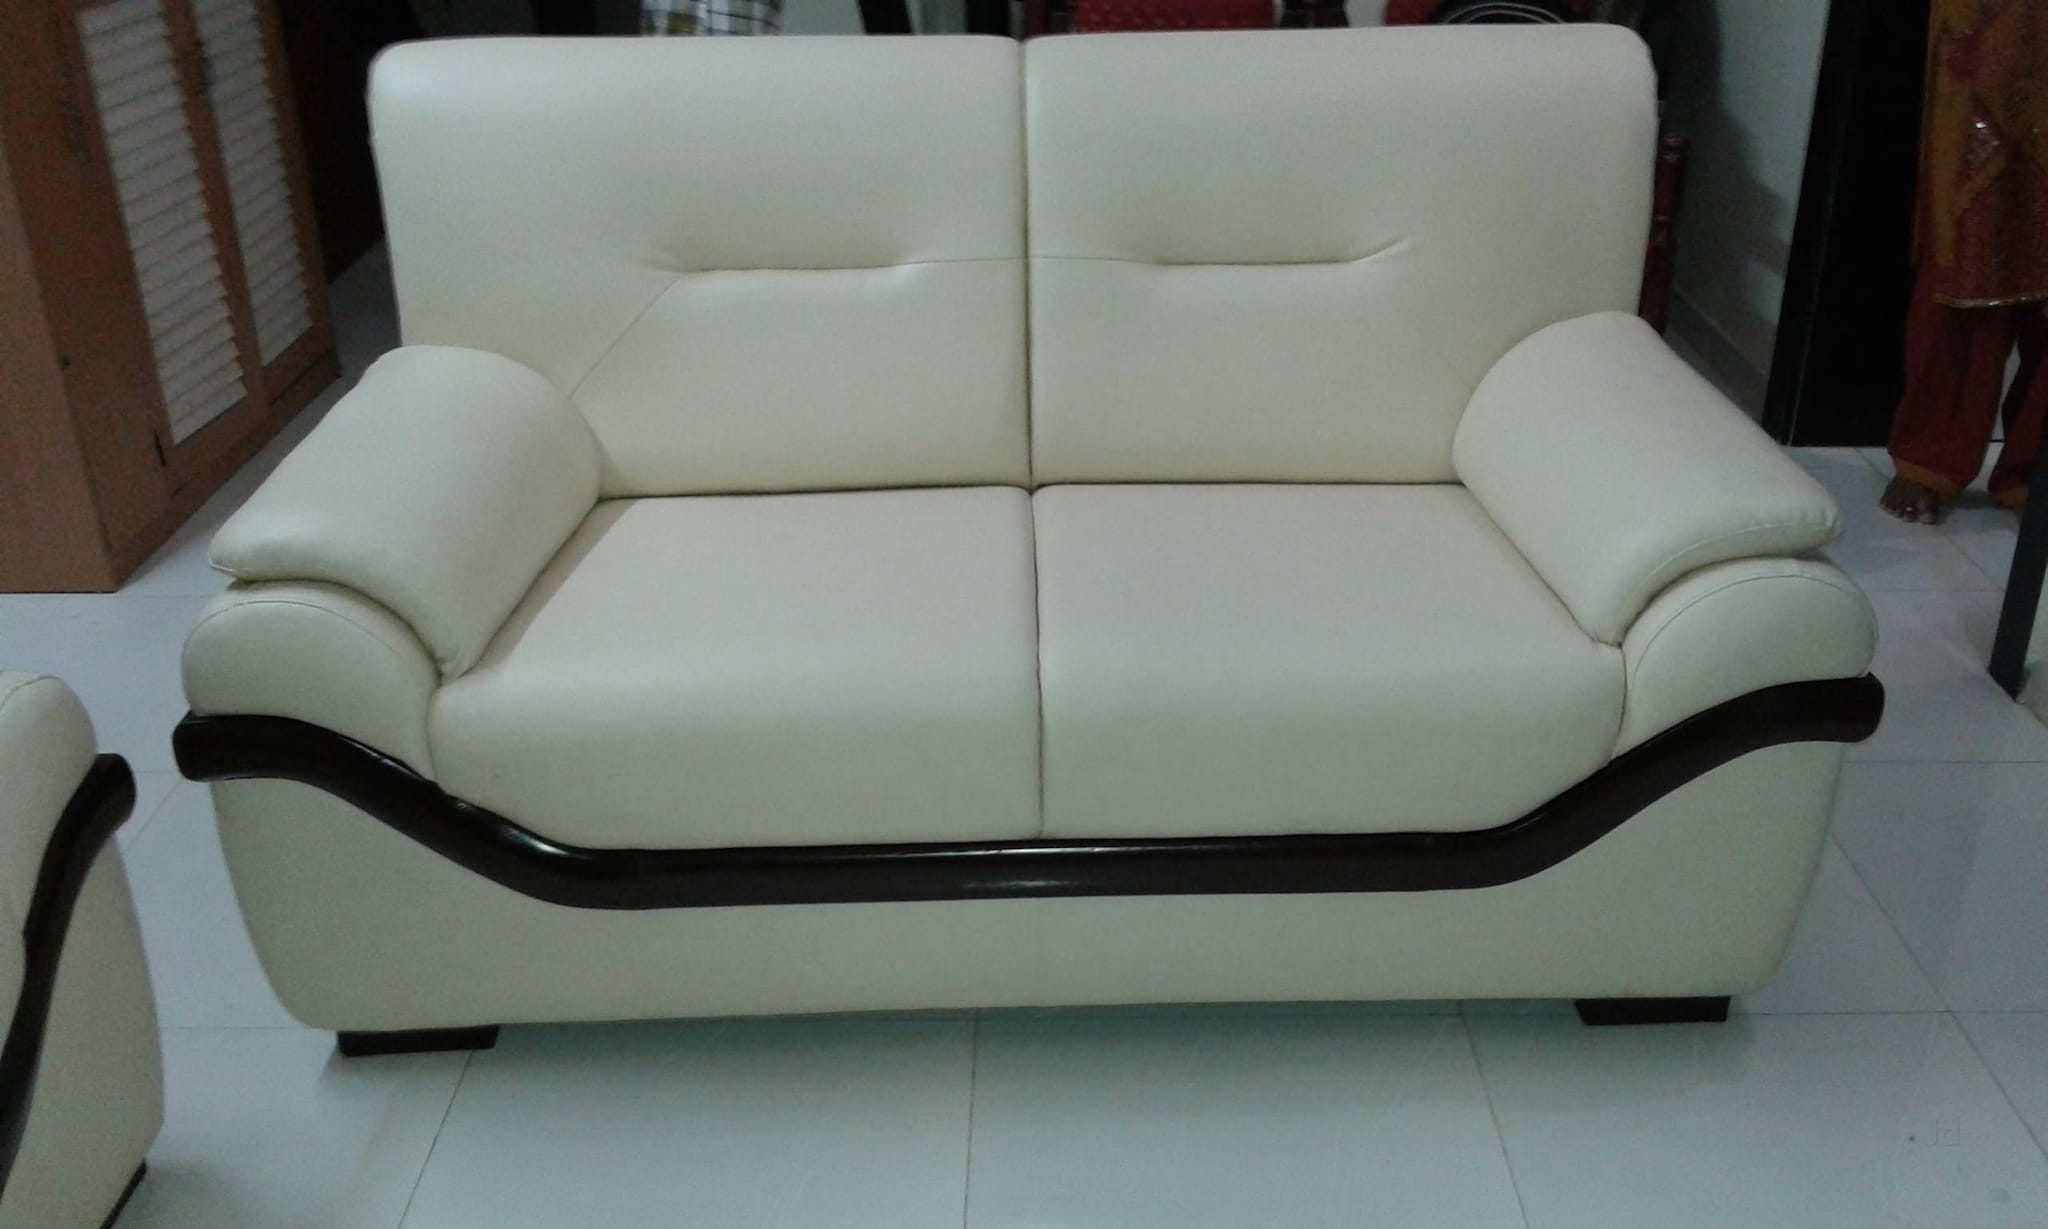 Recliner Sofa Repair Chennai Top 30 Recliner Sofa Repair Services In Pune Best Recliner